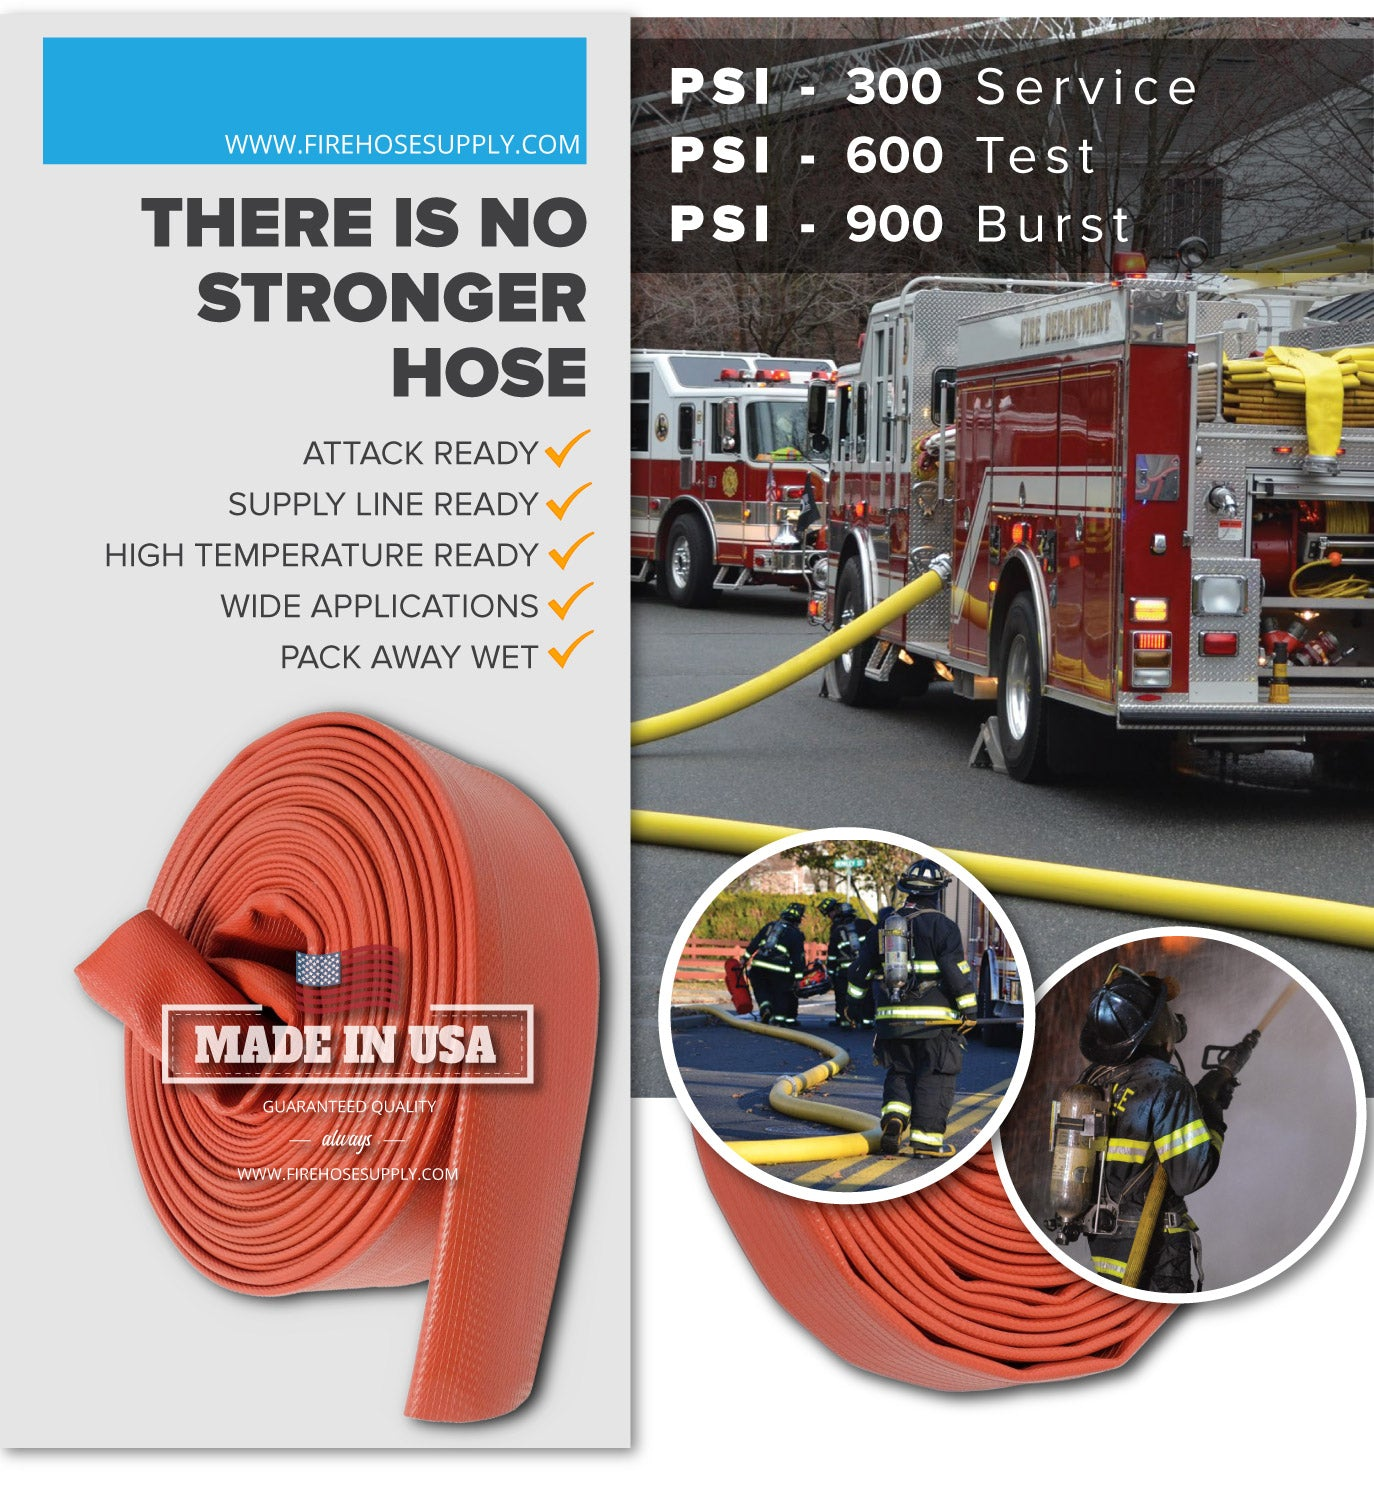 3 Inch Rubber Fire Hose Material Only Supply And Attack Ready Firefighter Red 600 PSI Test